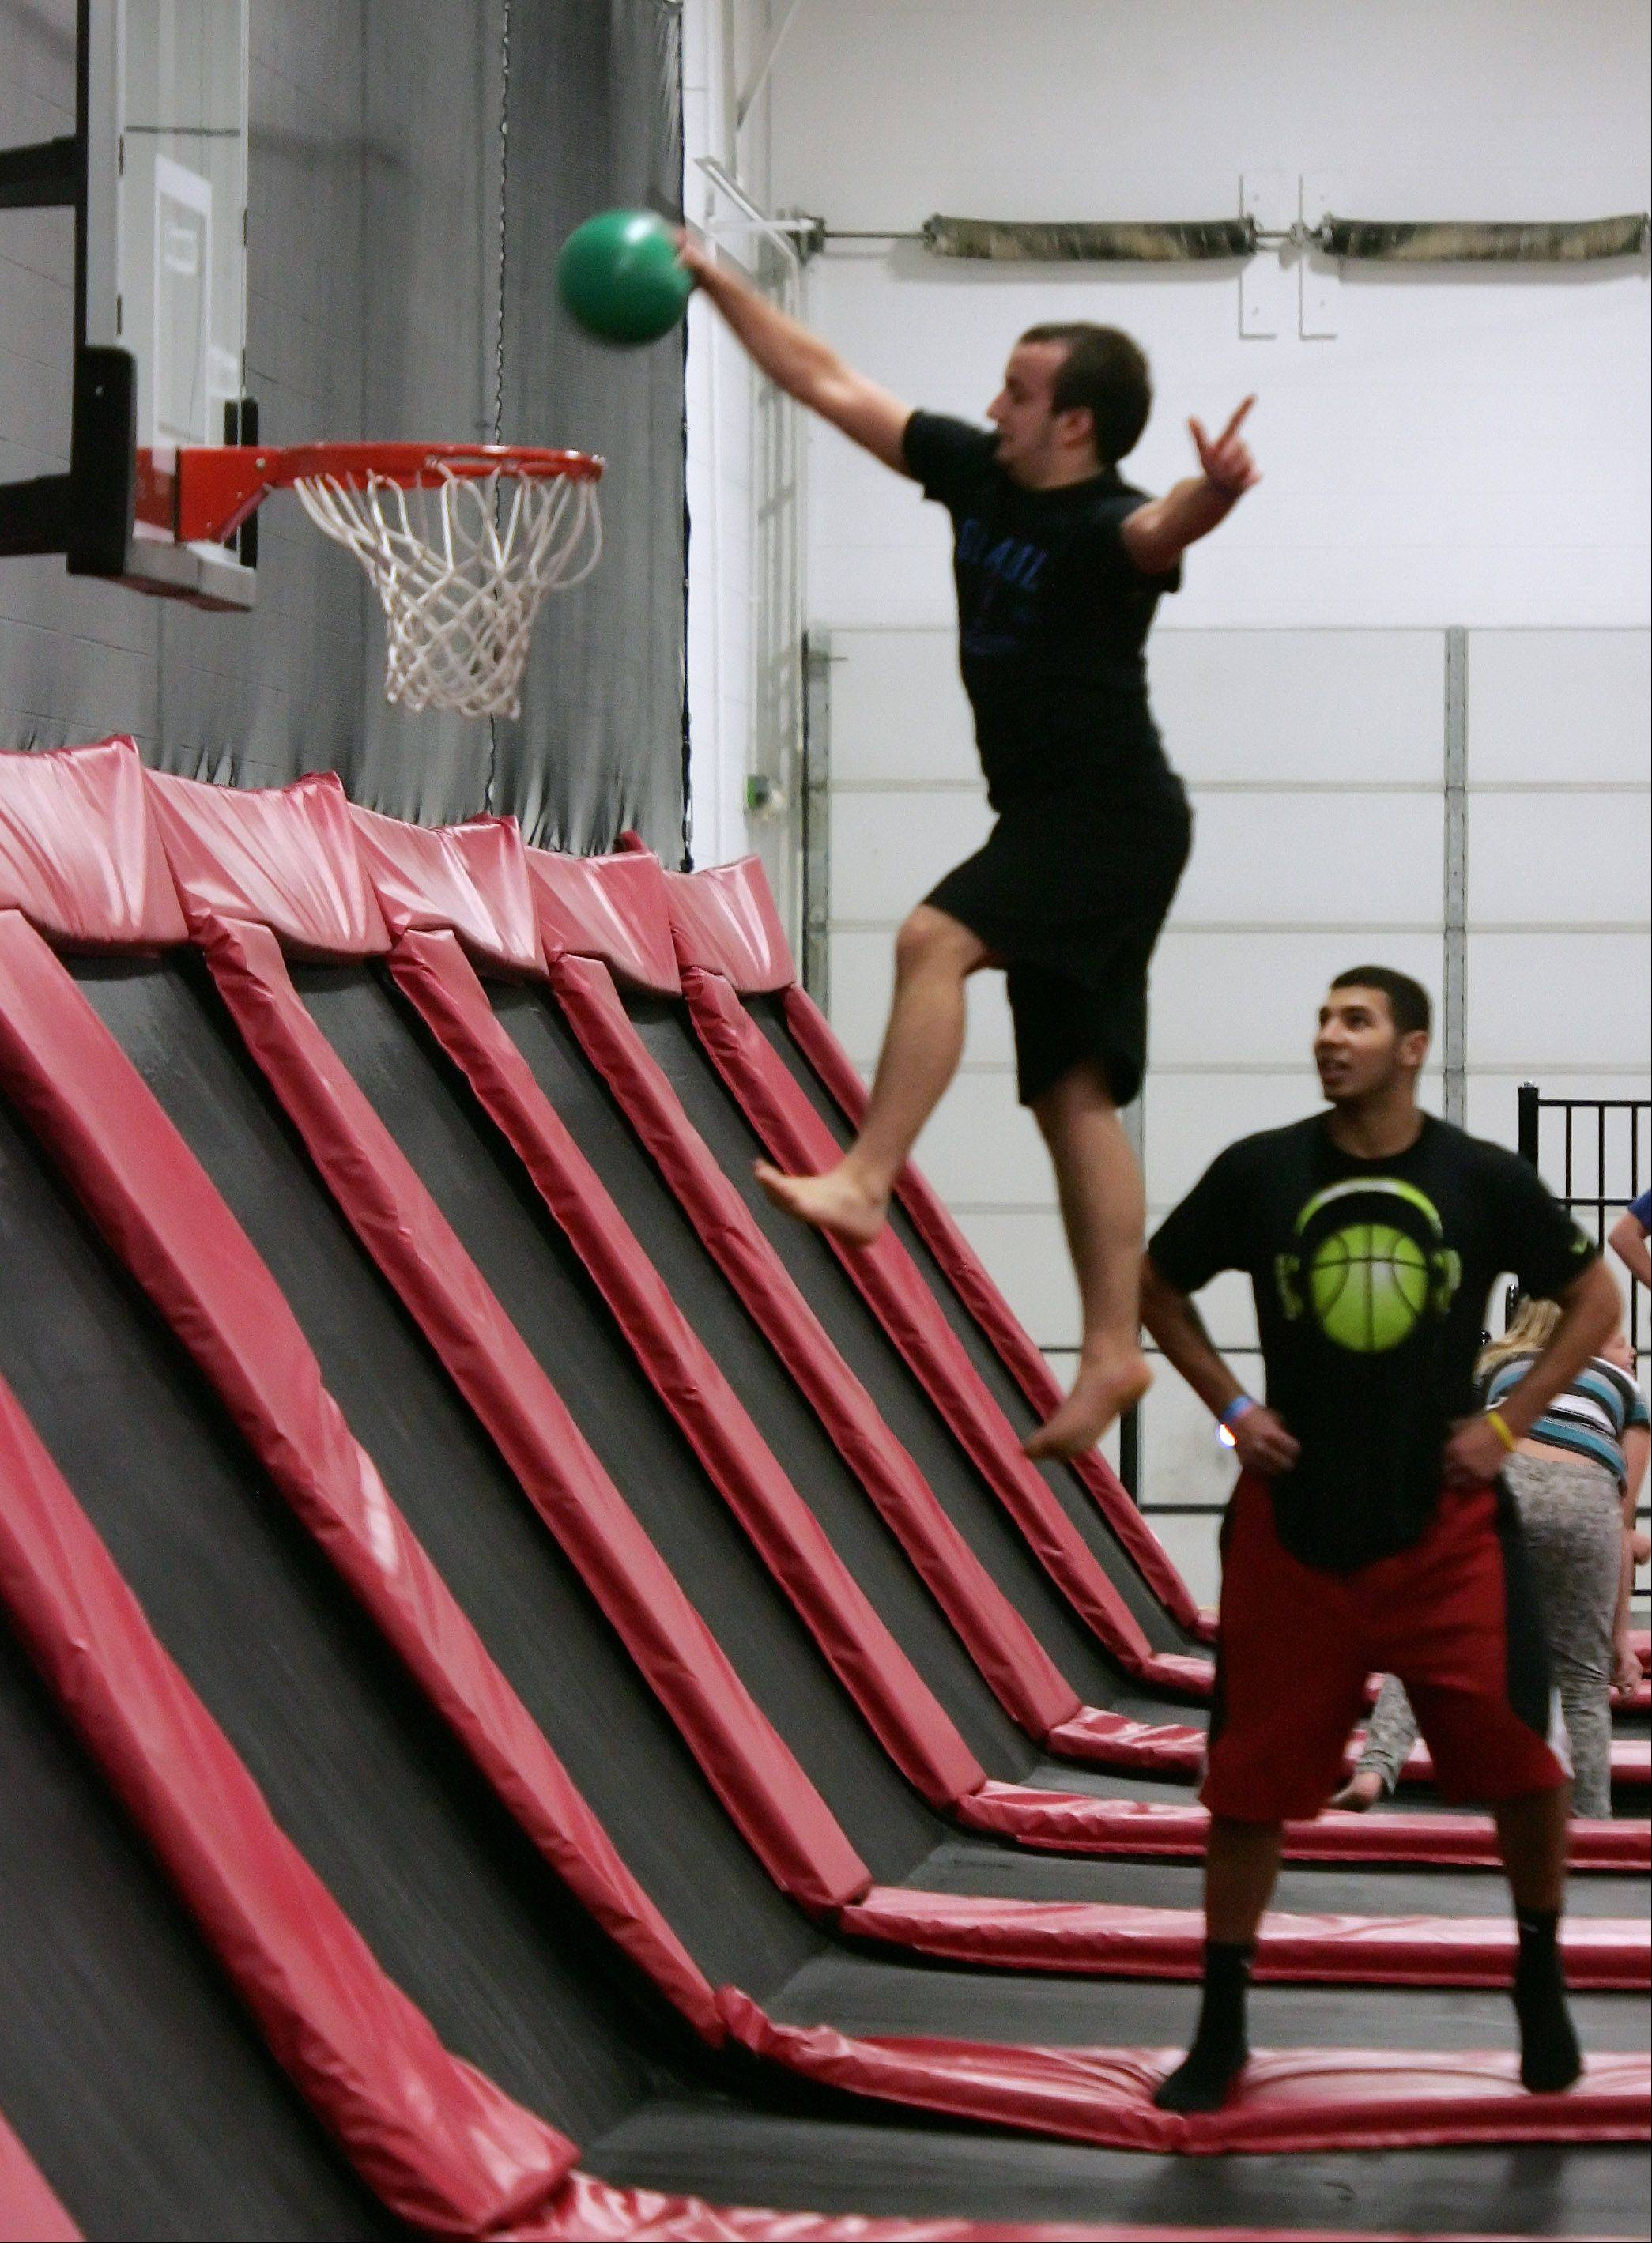 Merza Merza, 18, of Addison, dunks a ball as he jumps around at Xtreme Trampolines in Buffalo Grove. The entertainment center offers an active alternative for kids in the suburbs.